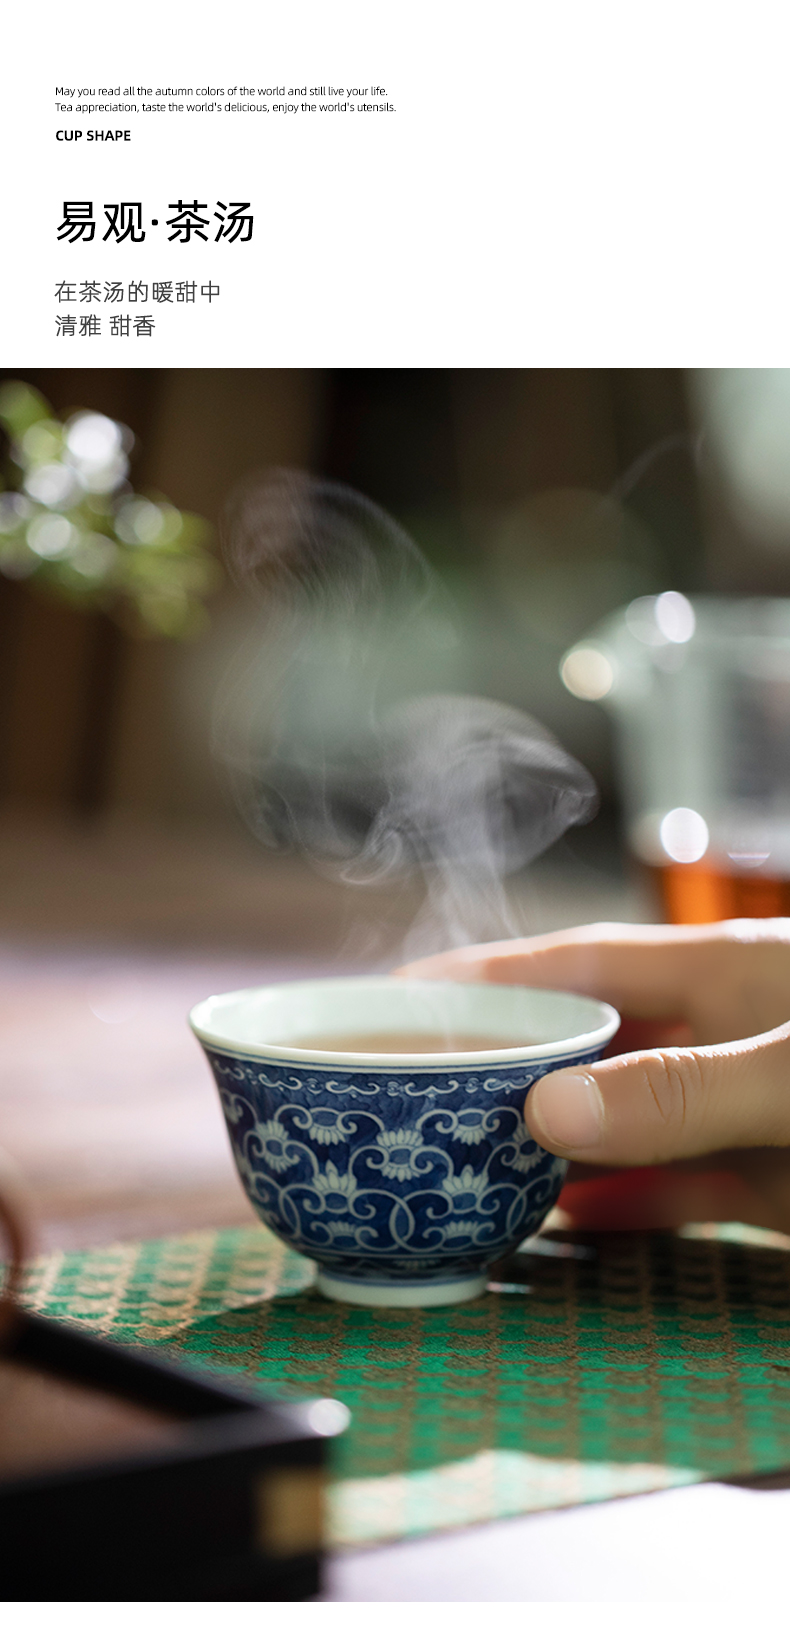 Qin Qiuyan the teacher floral cup jingdezhen blue and white tie up branches manual master cup single CPU ceramic cups sample tea cup